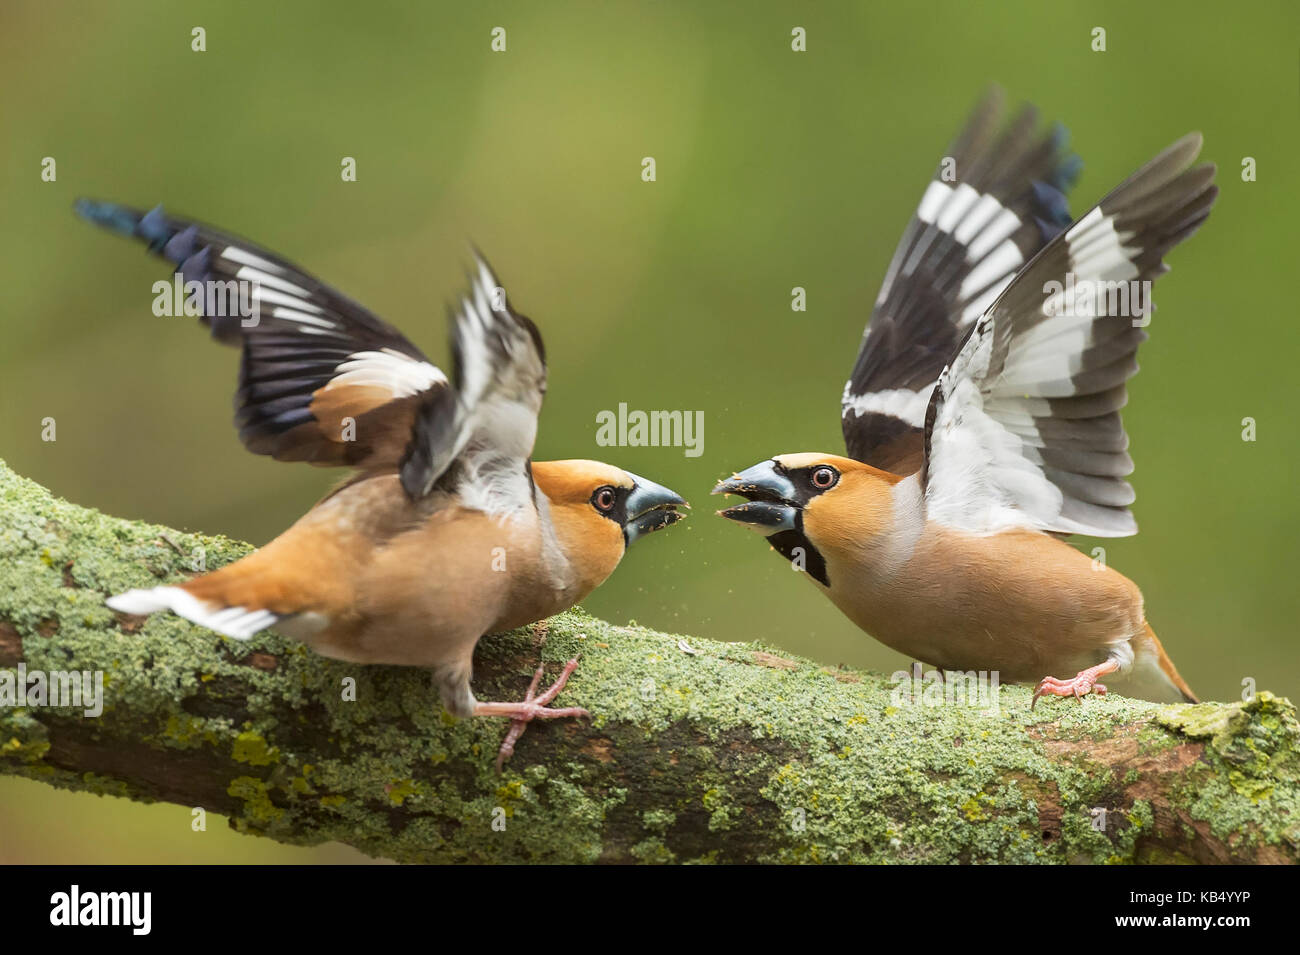 Hawfinch (Coccothraustes coccothraustes) adult male fighting, The Netherlands, Utrecht - Stock Image